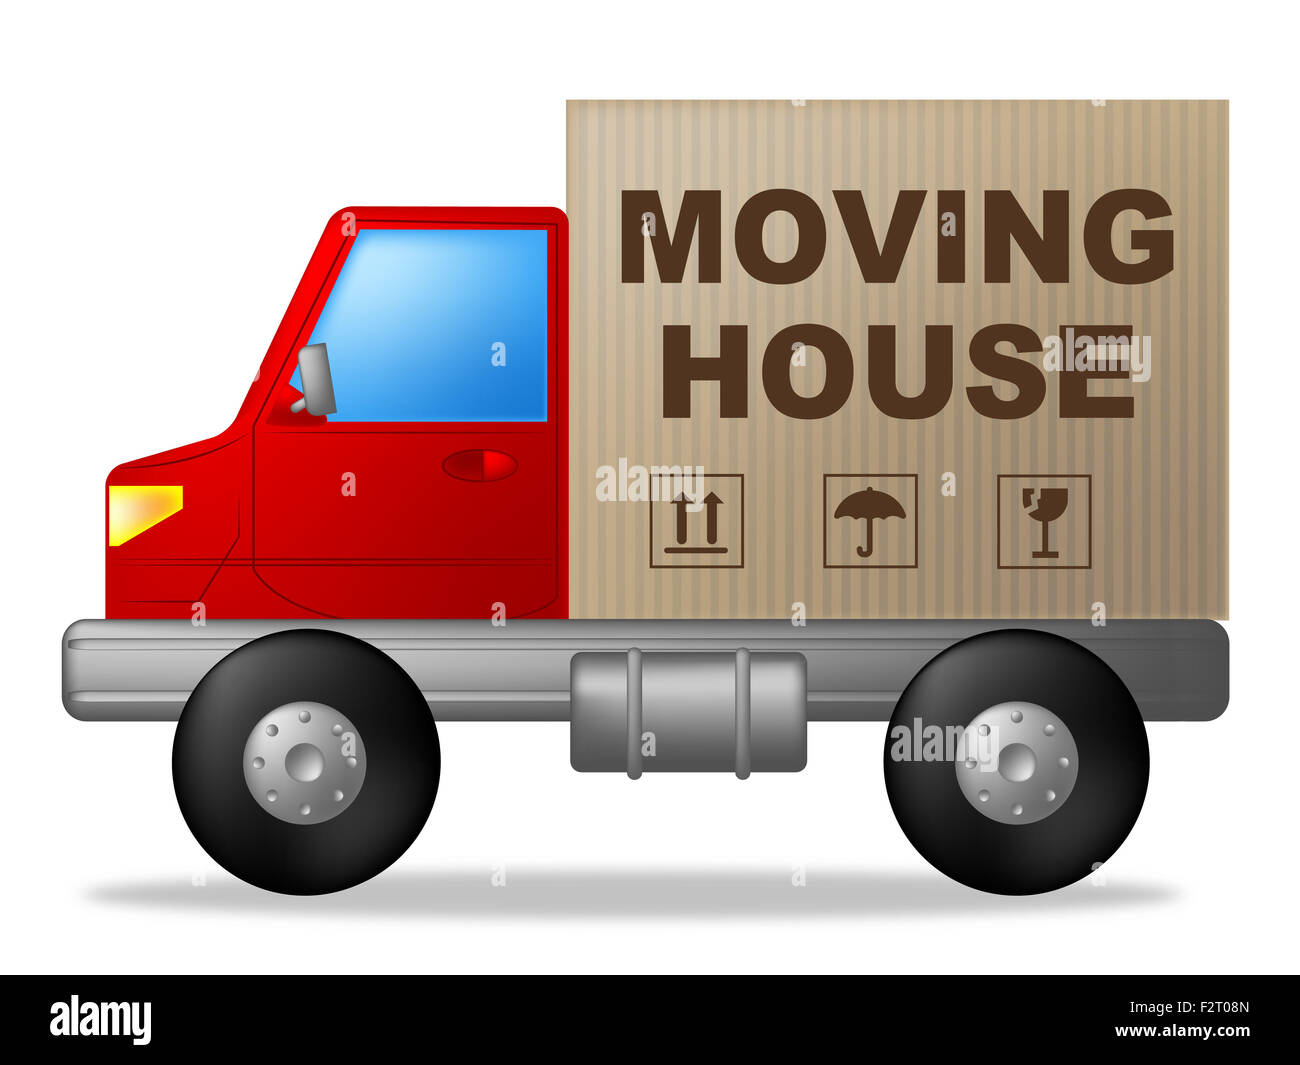 Moving House Meaning Change Of Address And Buy New Home – Free Change of Address